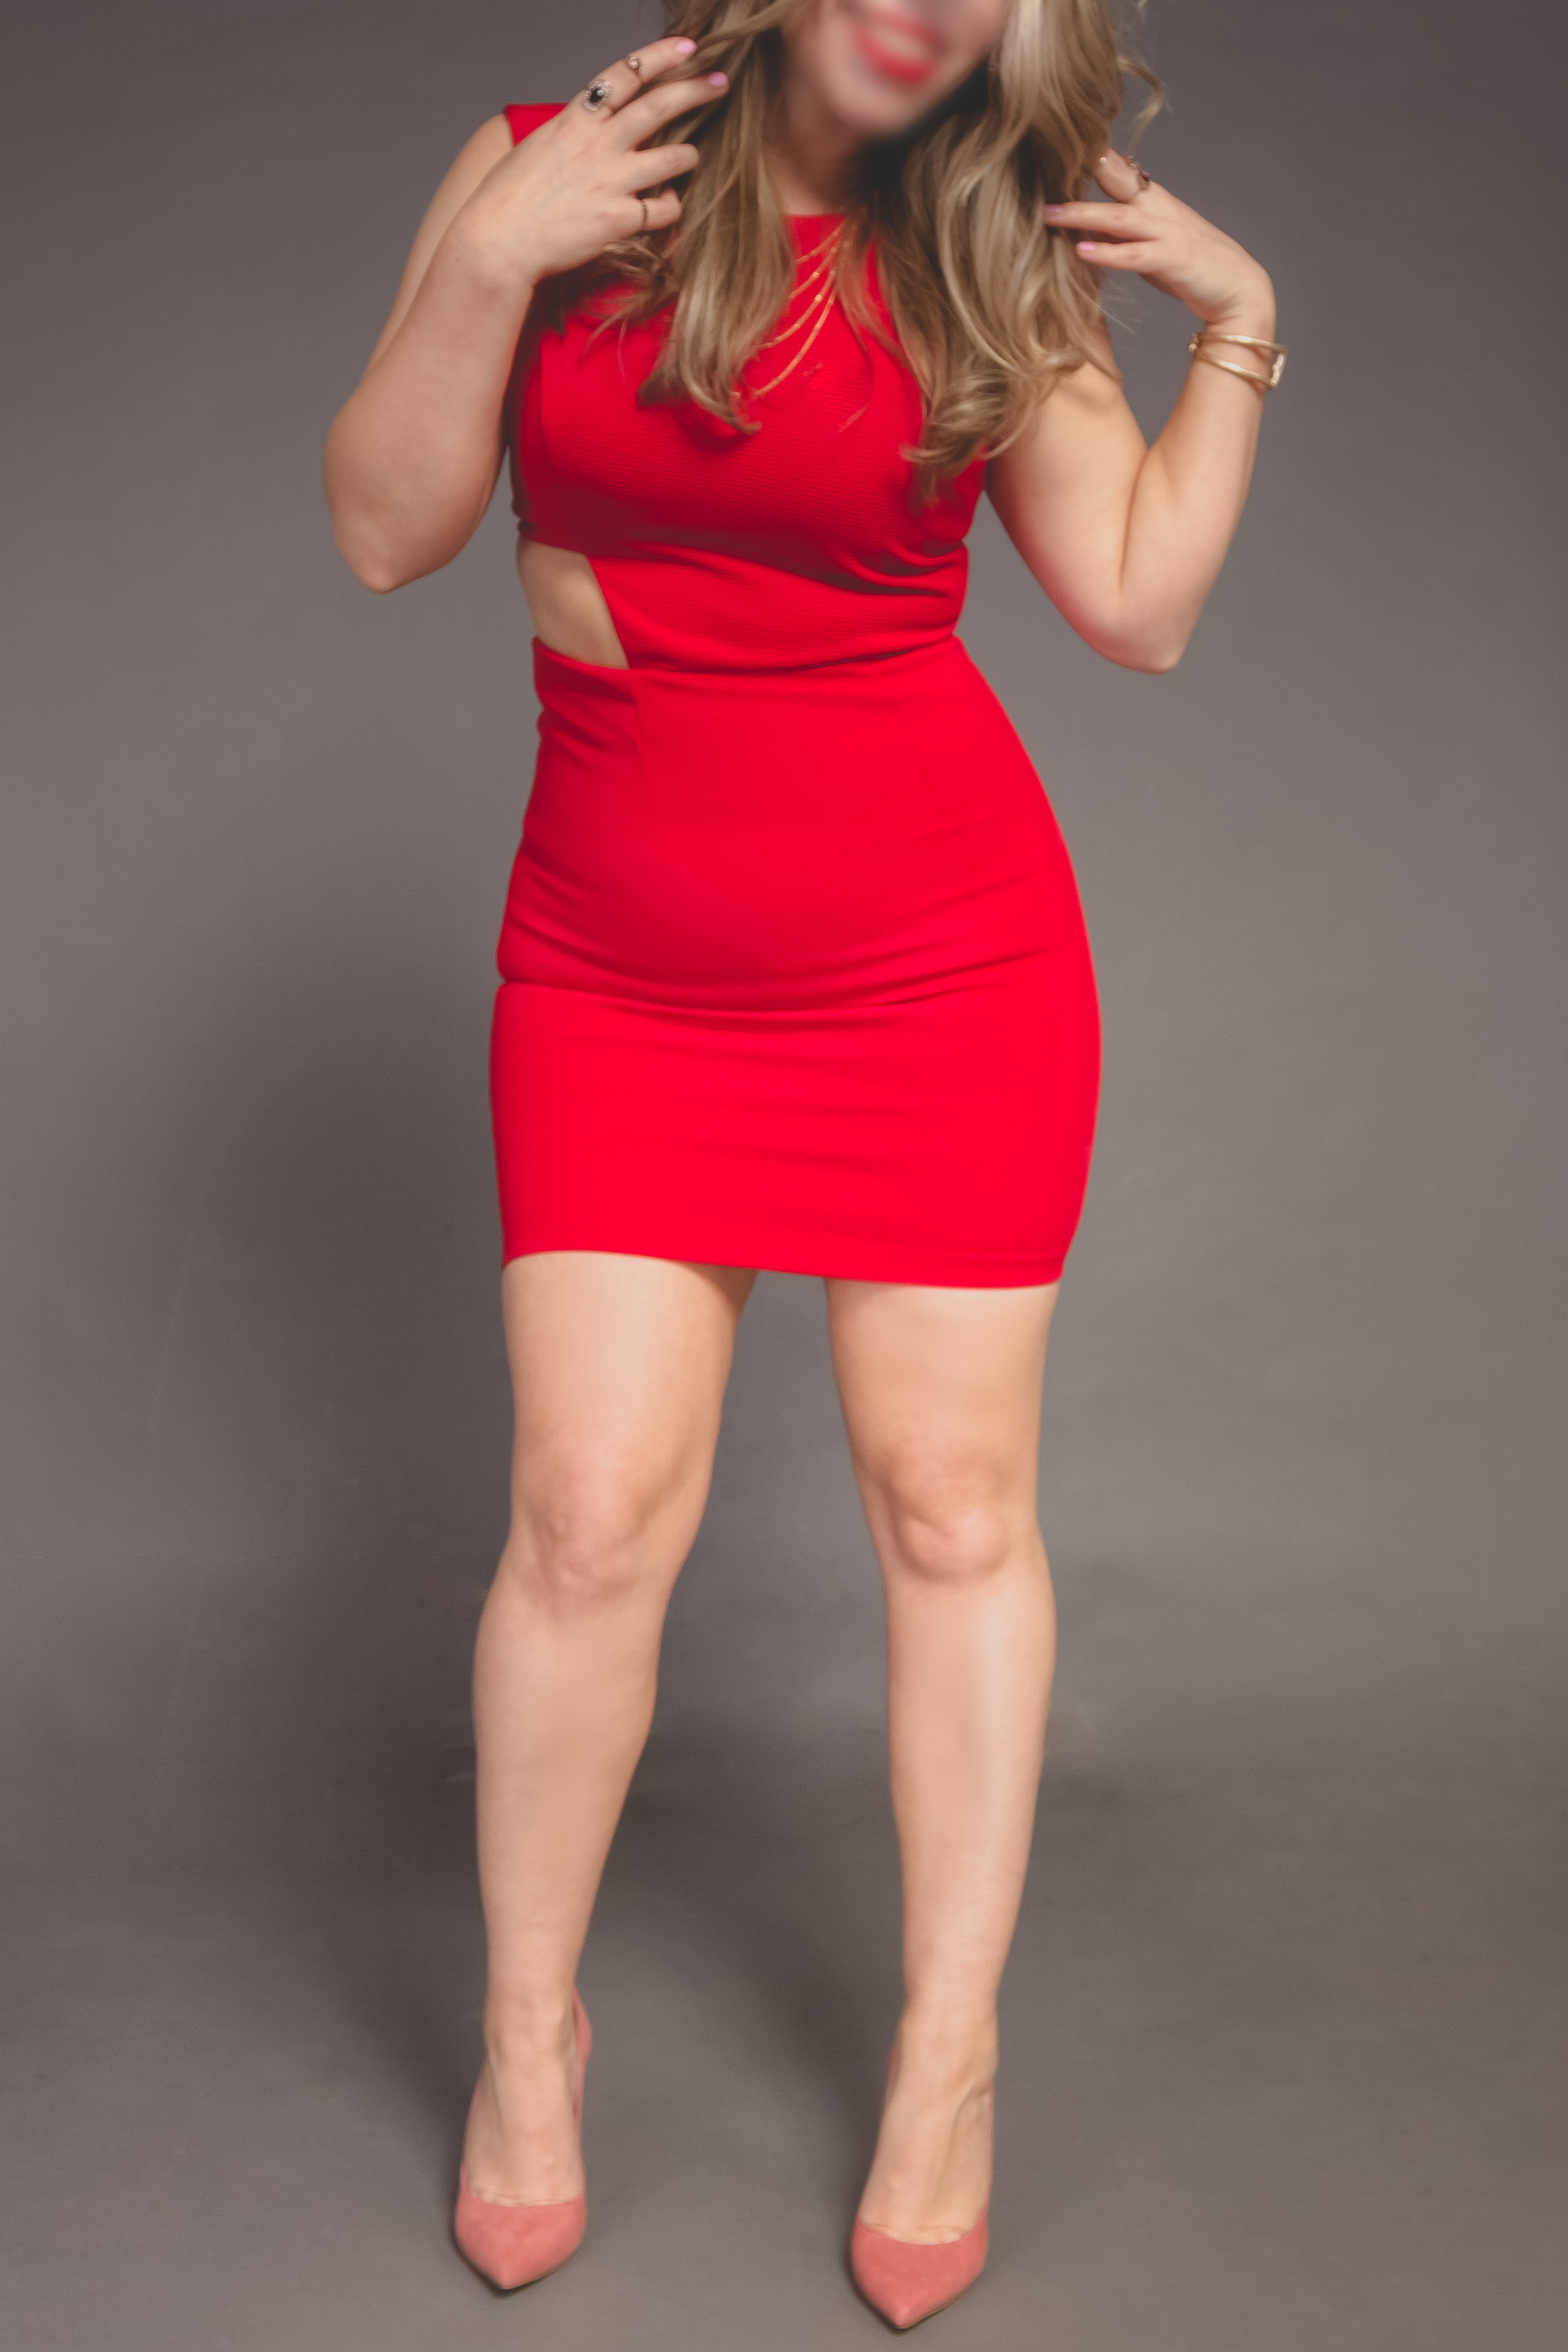 Curvy Blonde in a Tight Red Dress